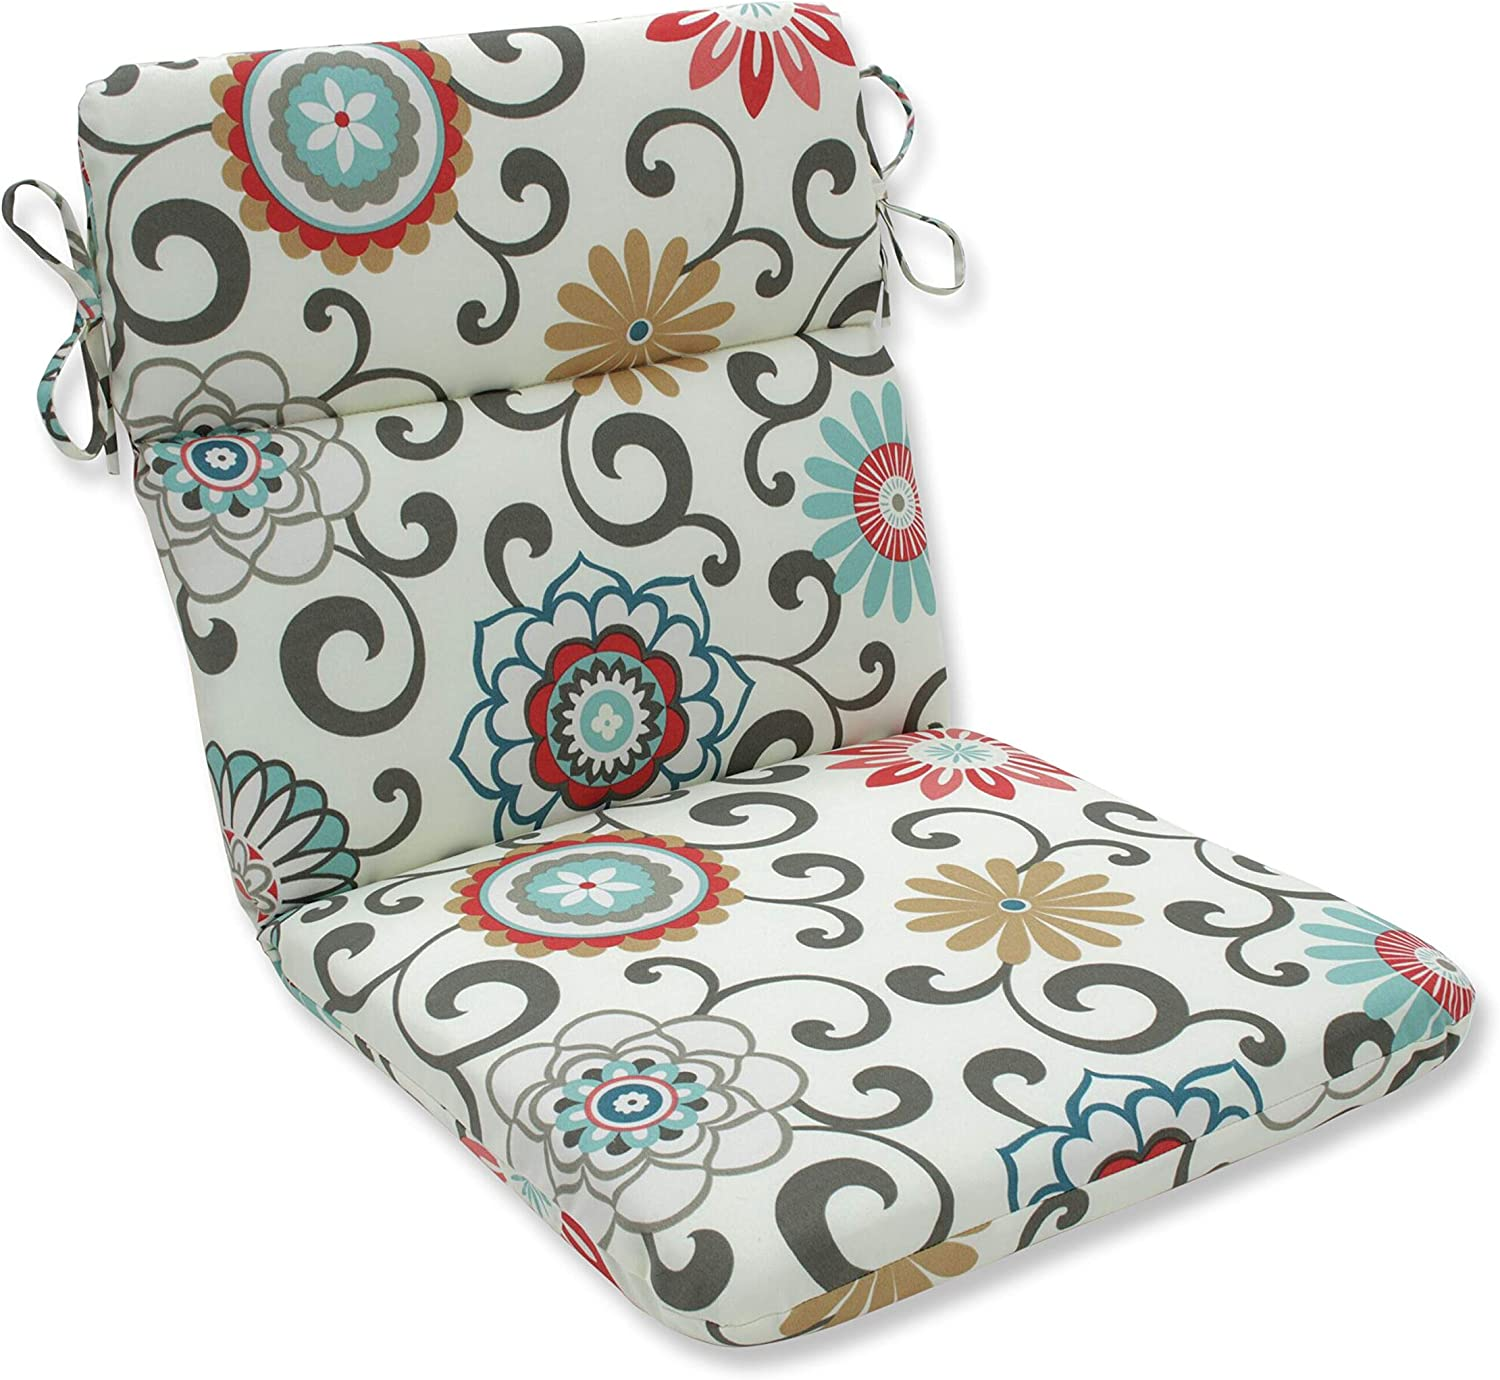 Pillow Perfect Outdoor Pom Pom Play Peachtini Rounded Corners Chair Cushion